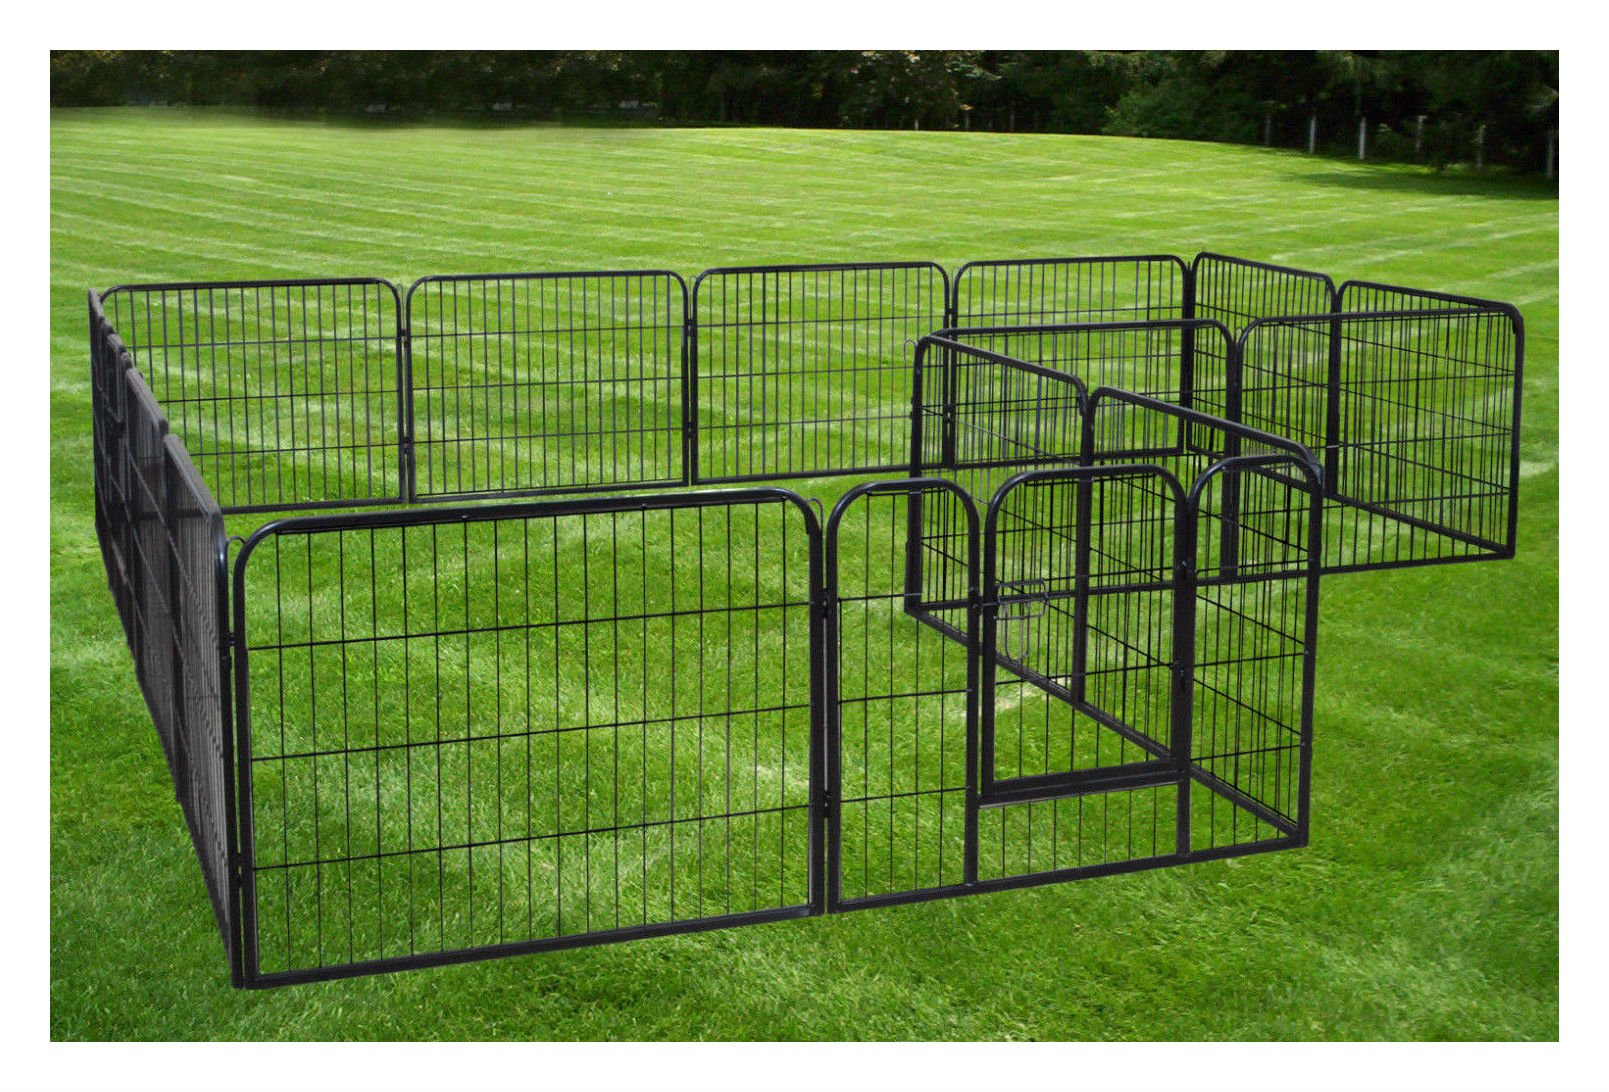 Large 16 Panels Pet Dog Cat Metal Exercise Barrier Fence Playpen Kennel Yard New Top Selling Item by Unbranded* (Image #1)